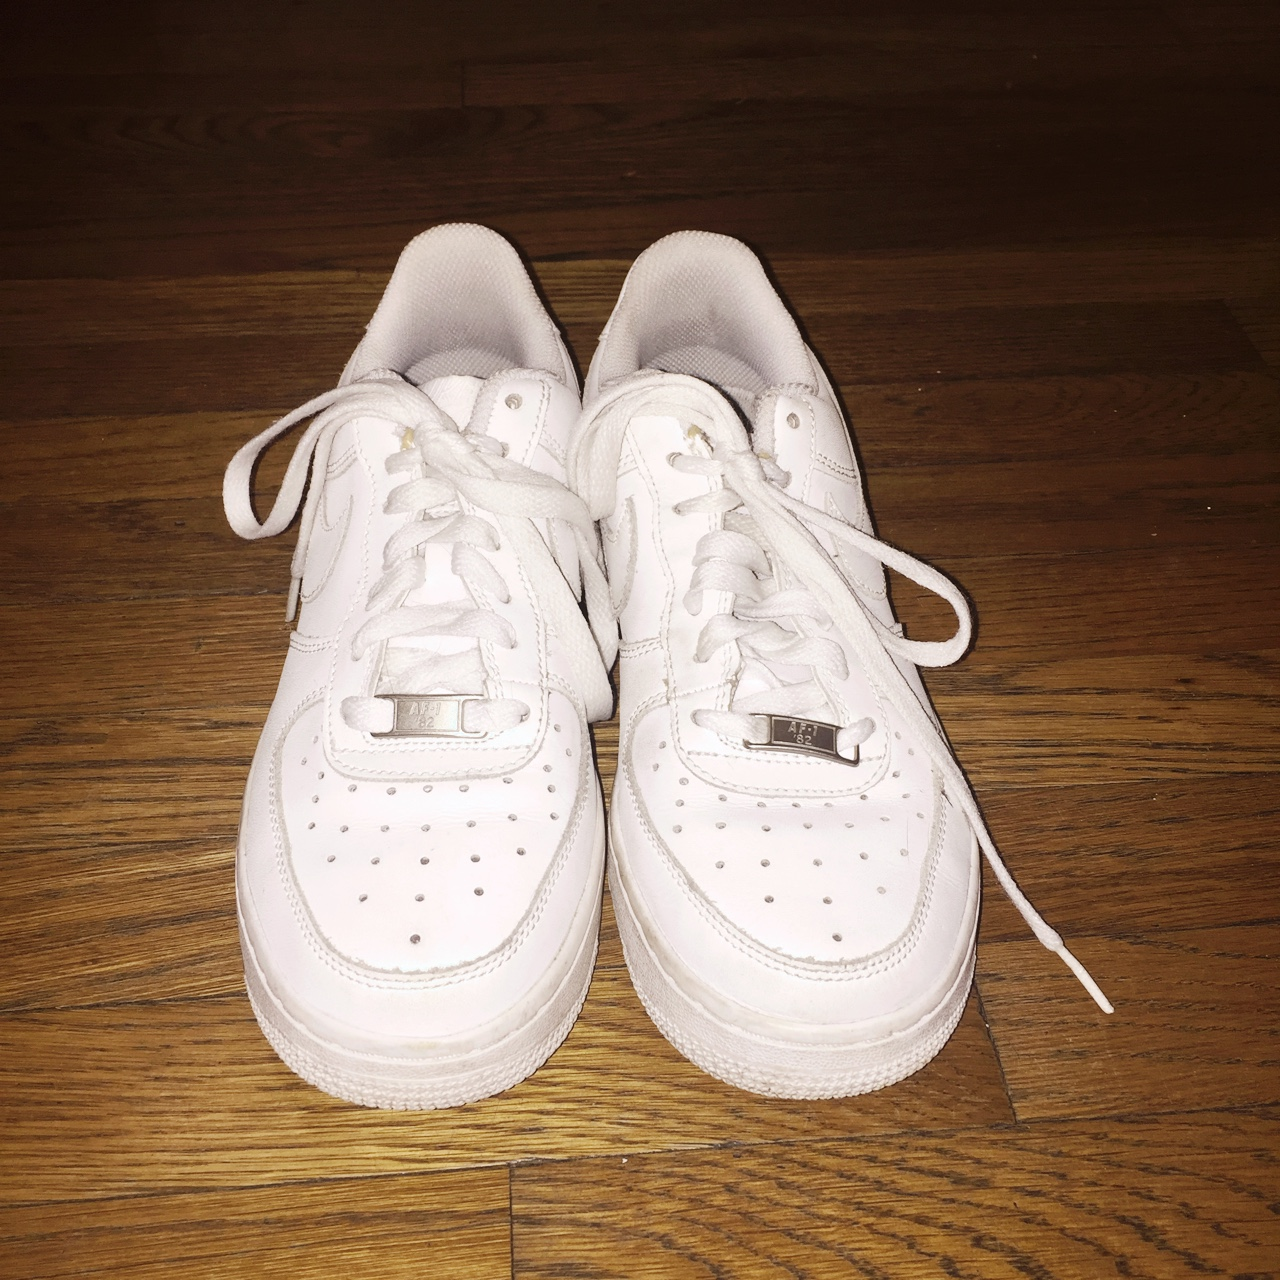 size 40 7a95b 69997 Nike Air Force 1. Used but in good condition! Size 7... - Depop